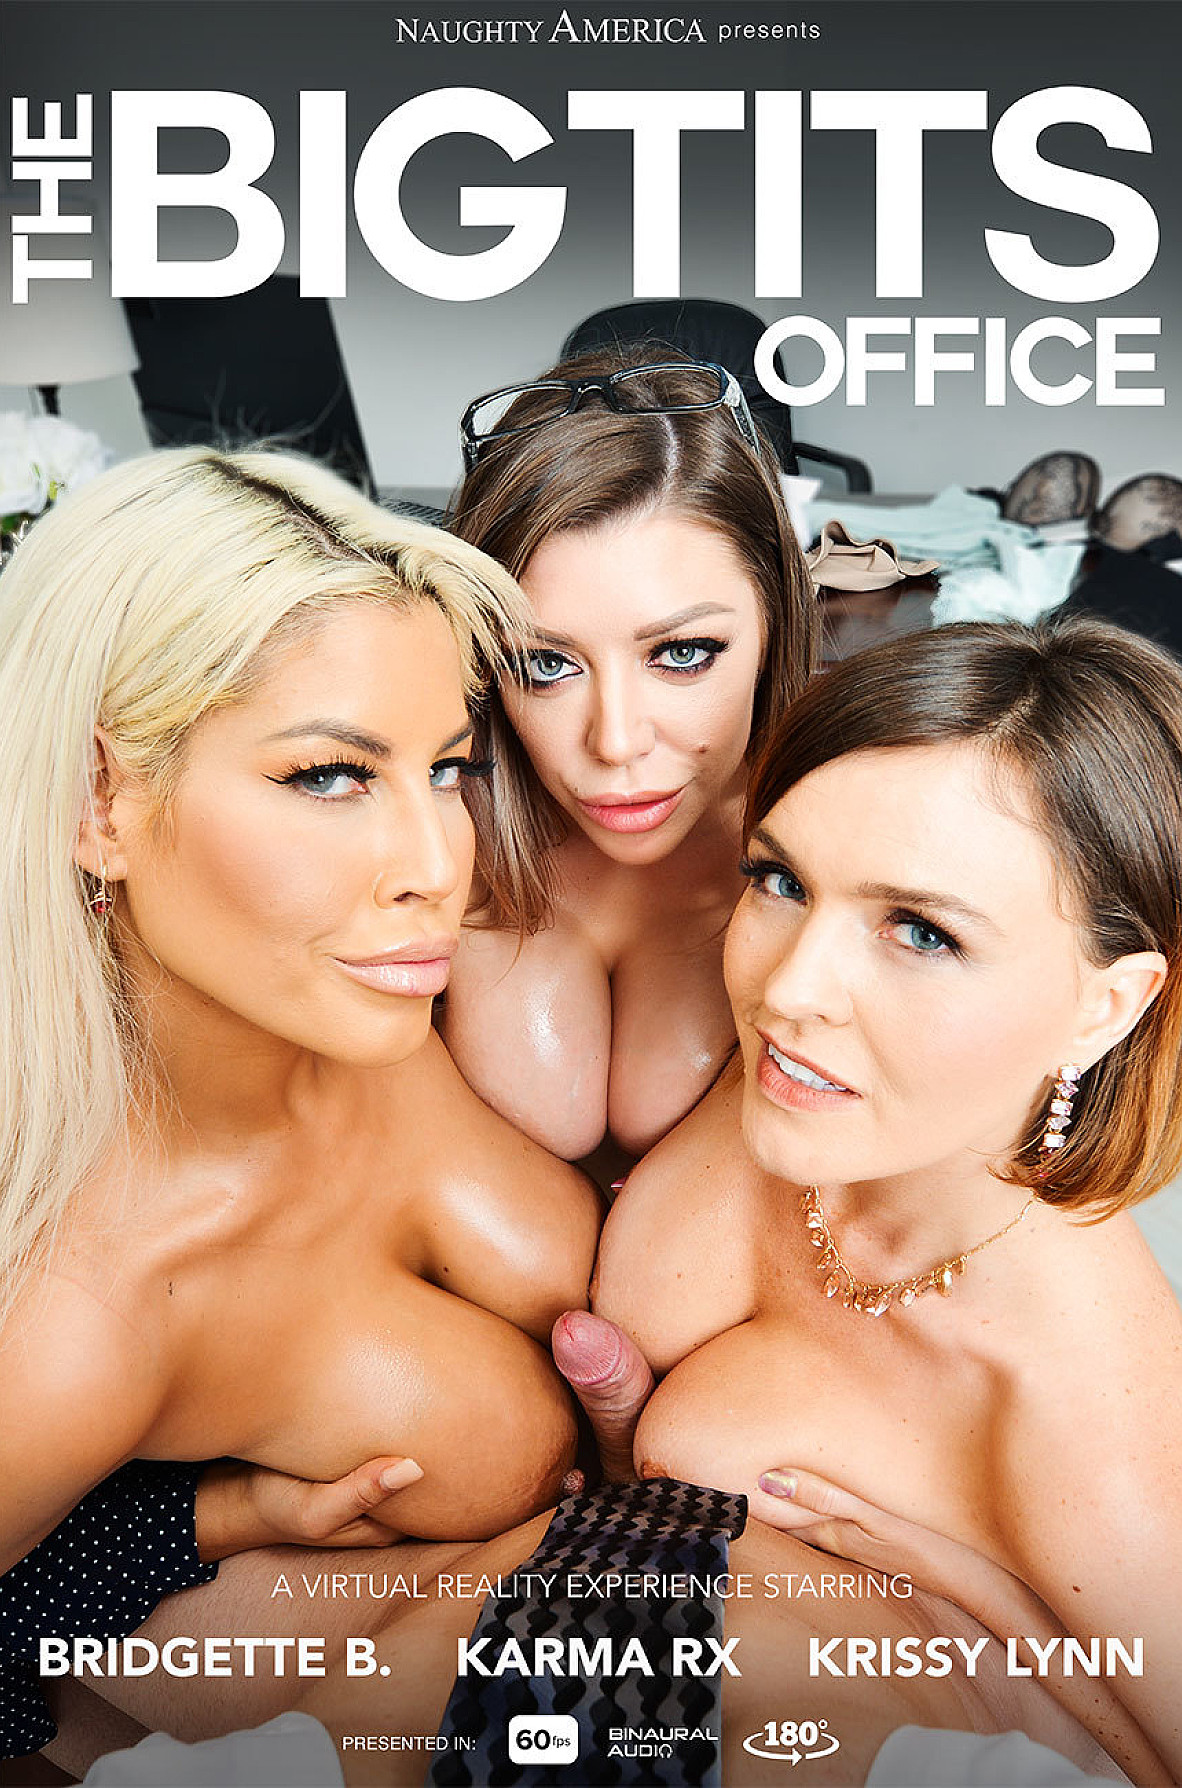 Watch Bridgette B., Karma Rx, Krissy Lynn and Brad Sterling VR video in Naughty America